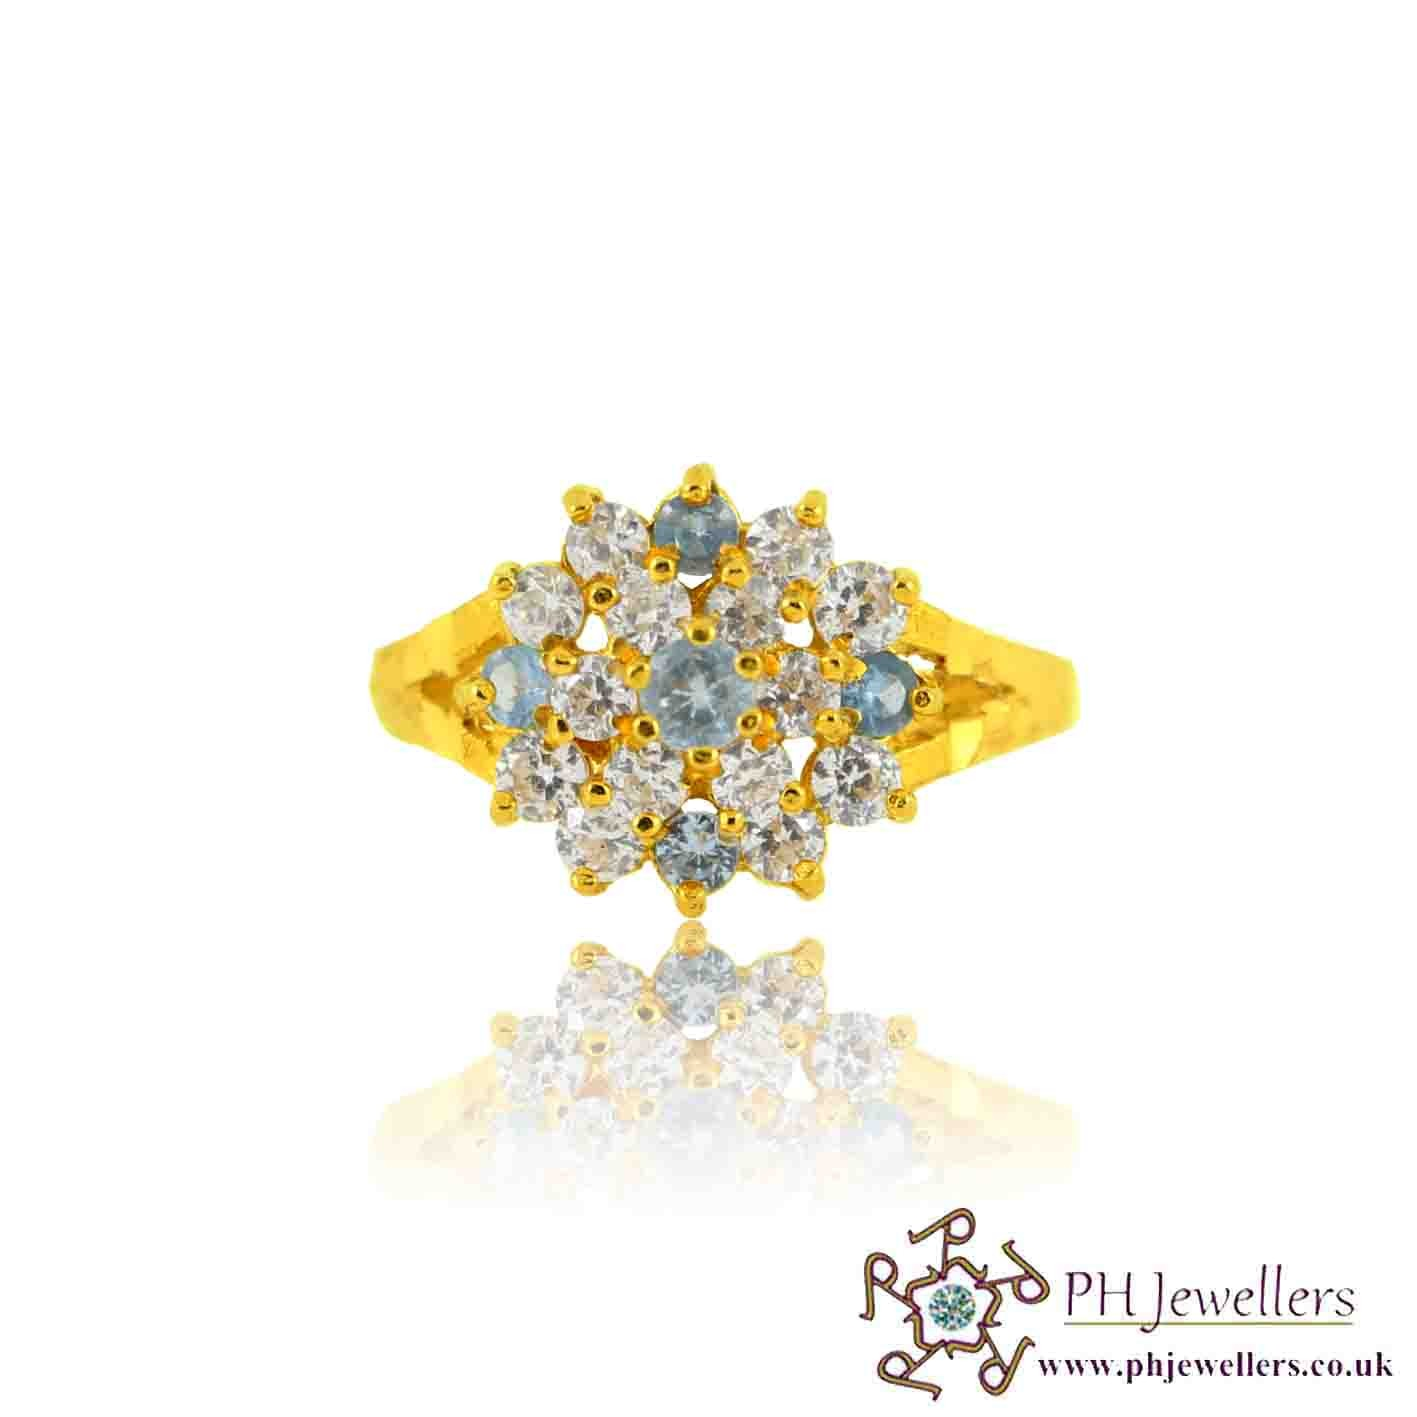 22ct 916 Yellow Gold Hallmark Topaz Ring CZ Size N 1/2 SR128